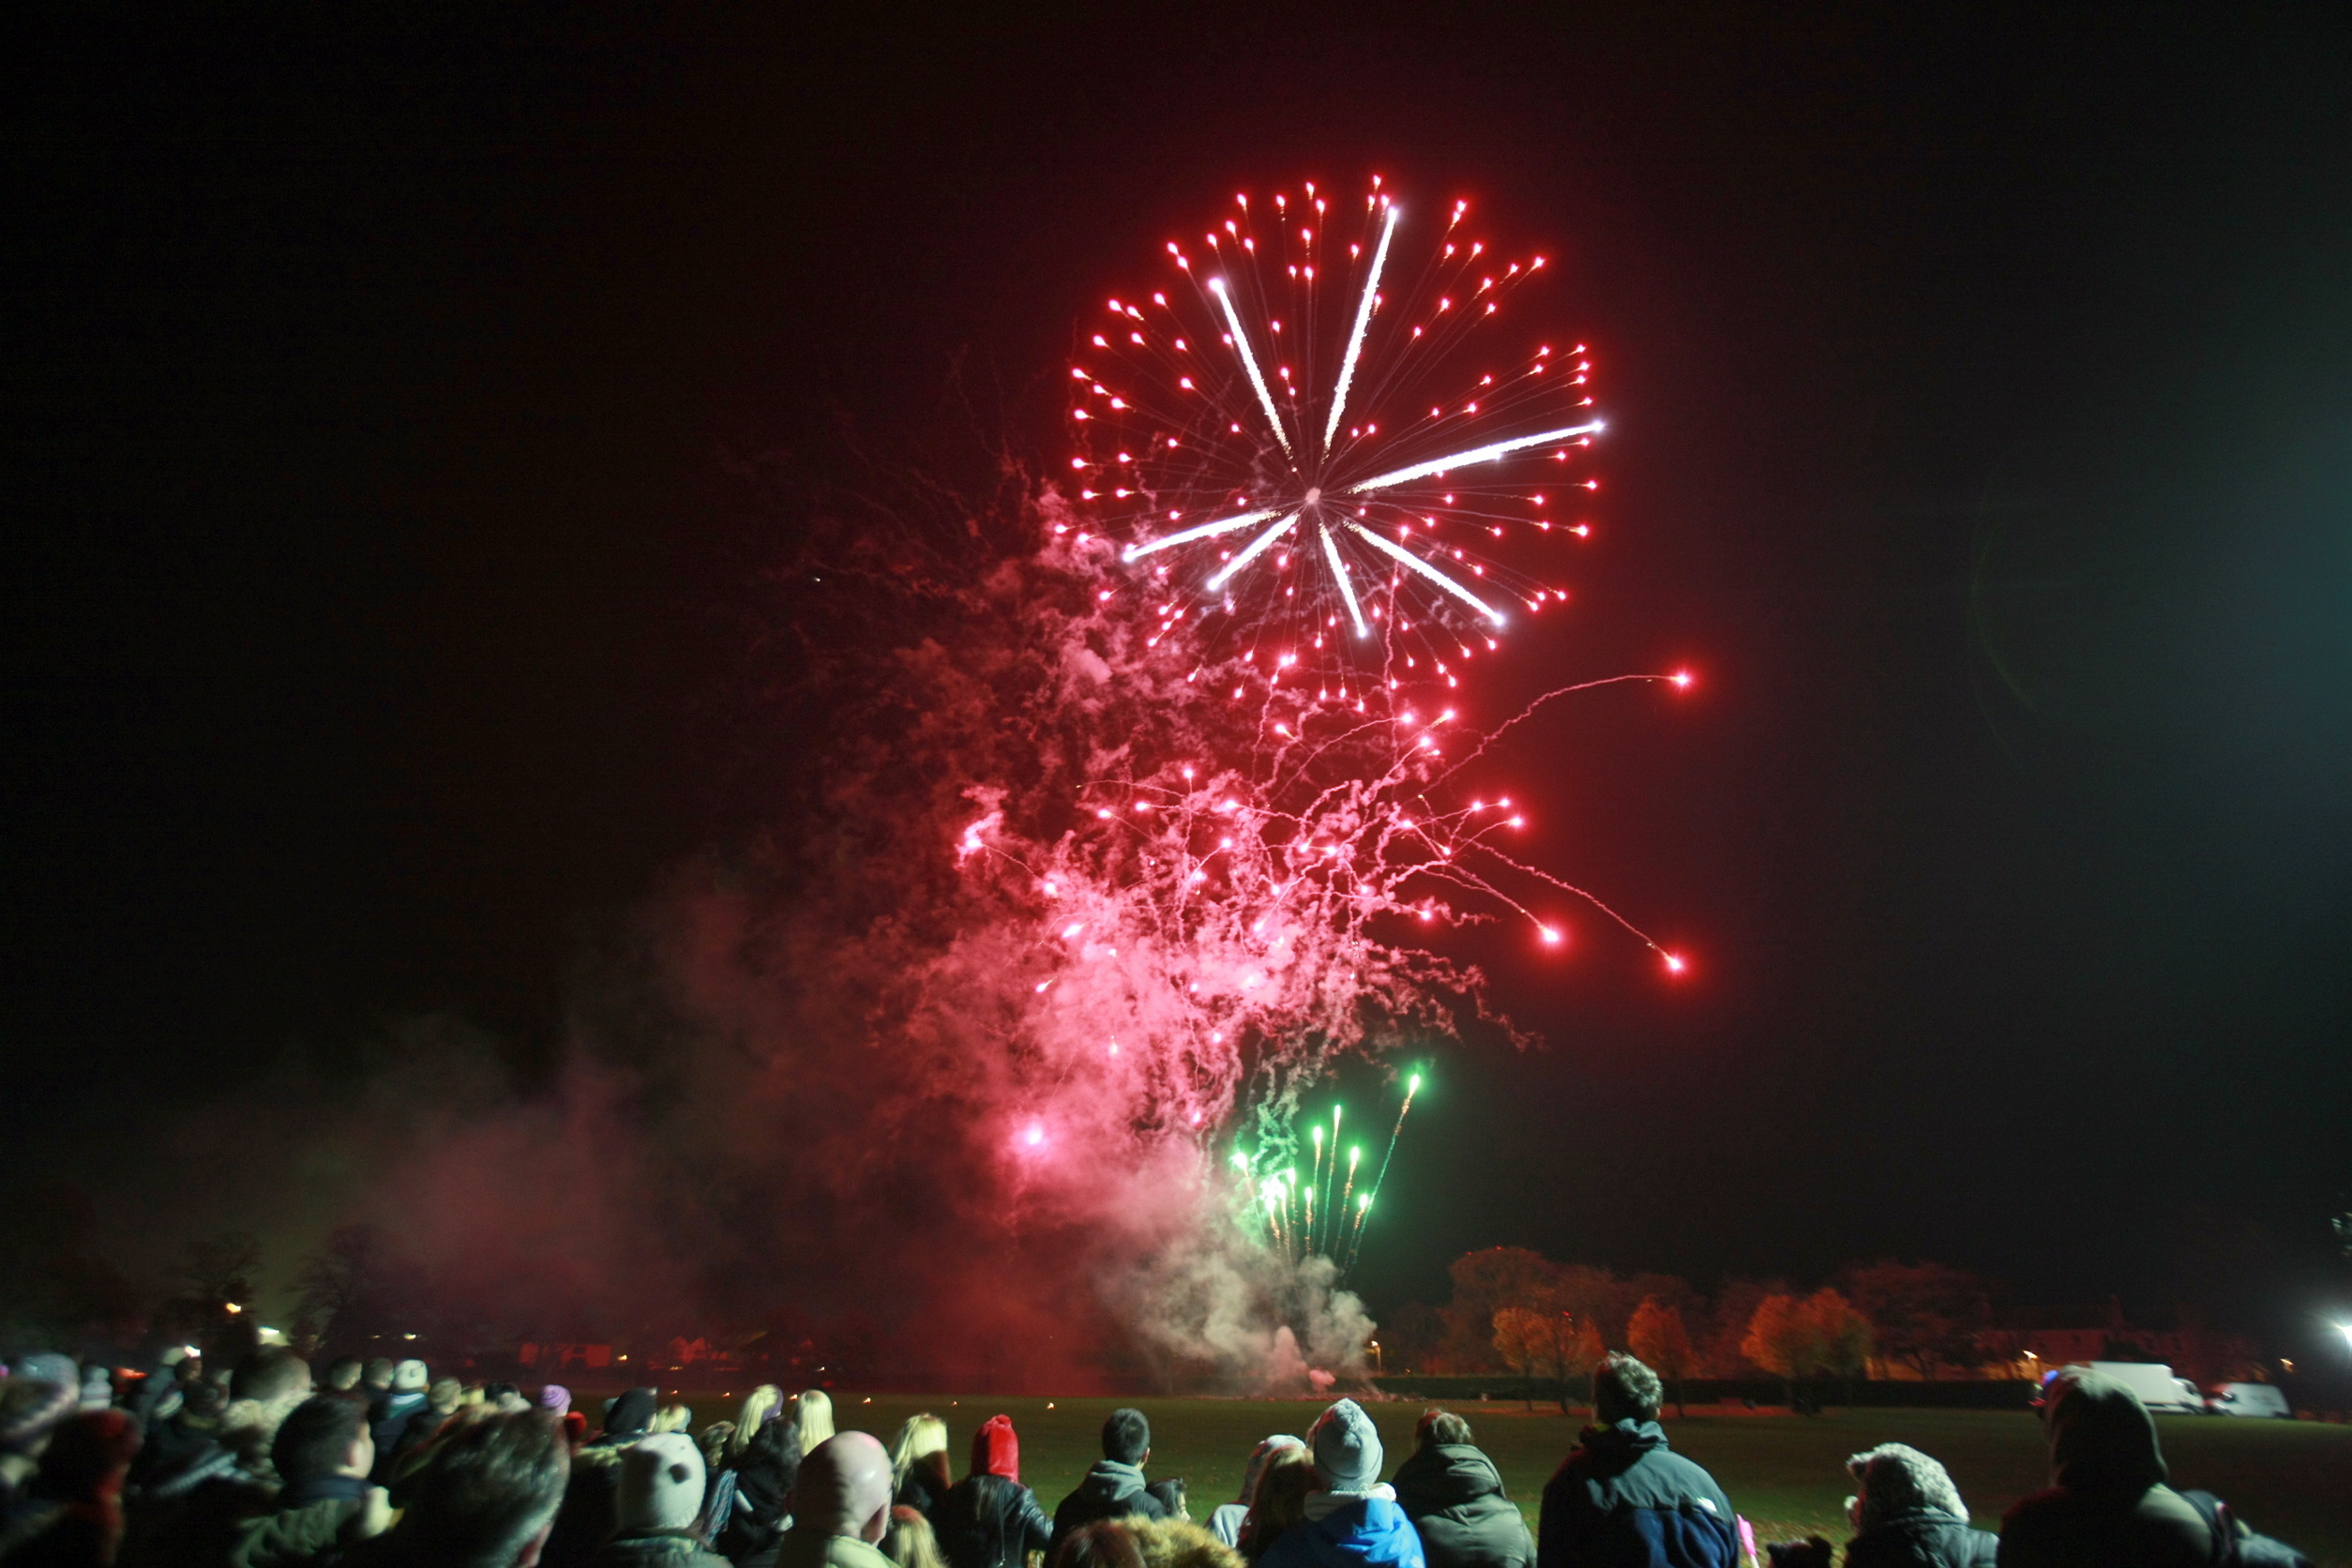 Crowds at a previous fireworks display held in the city's Baxter Park.